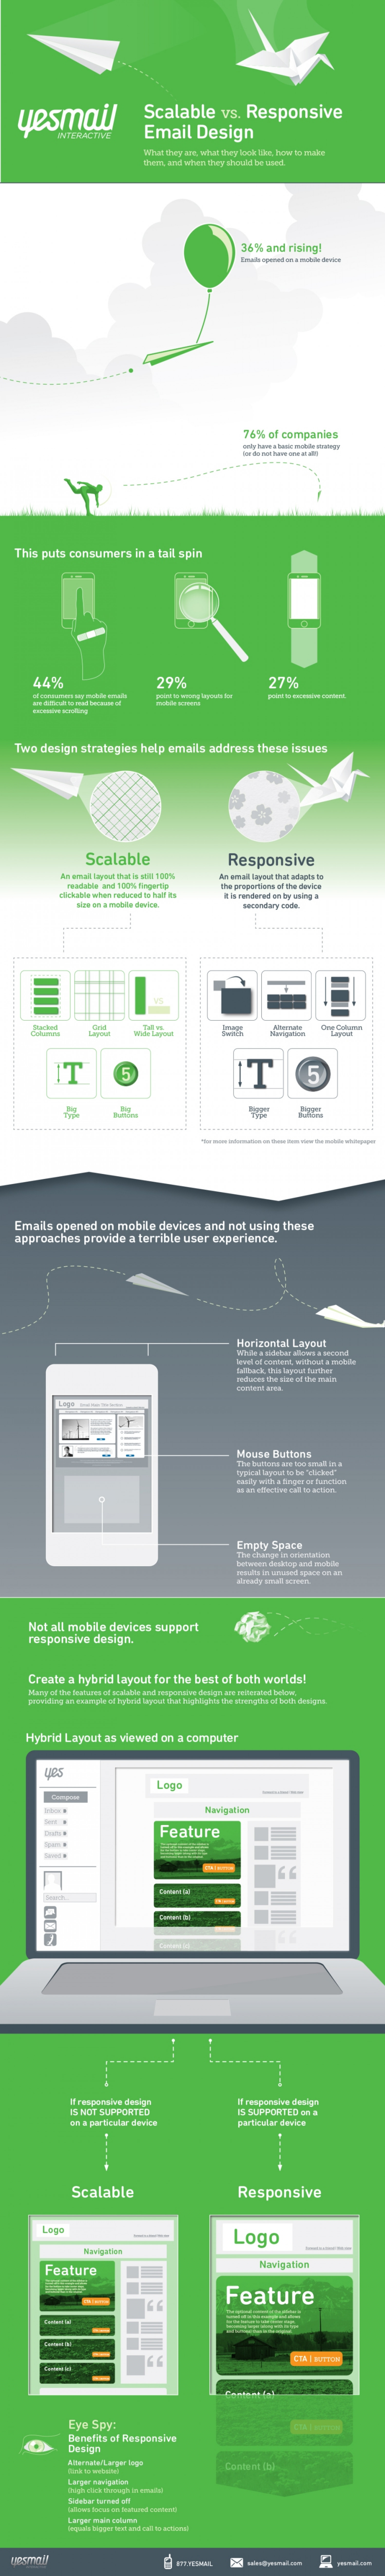 Scalable vs. Responsive Email Design Infographic